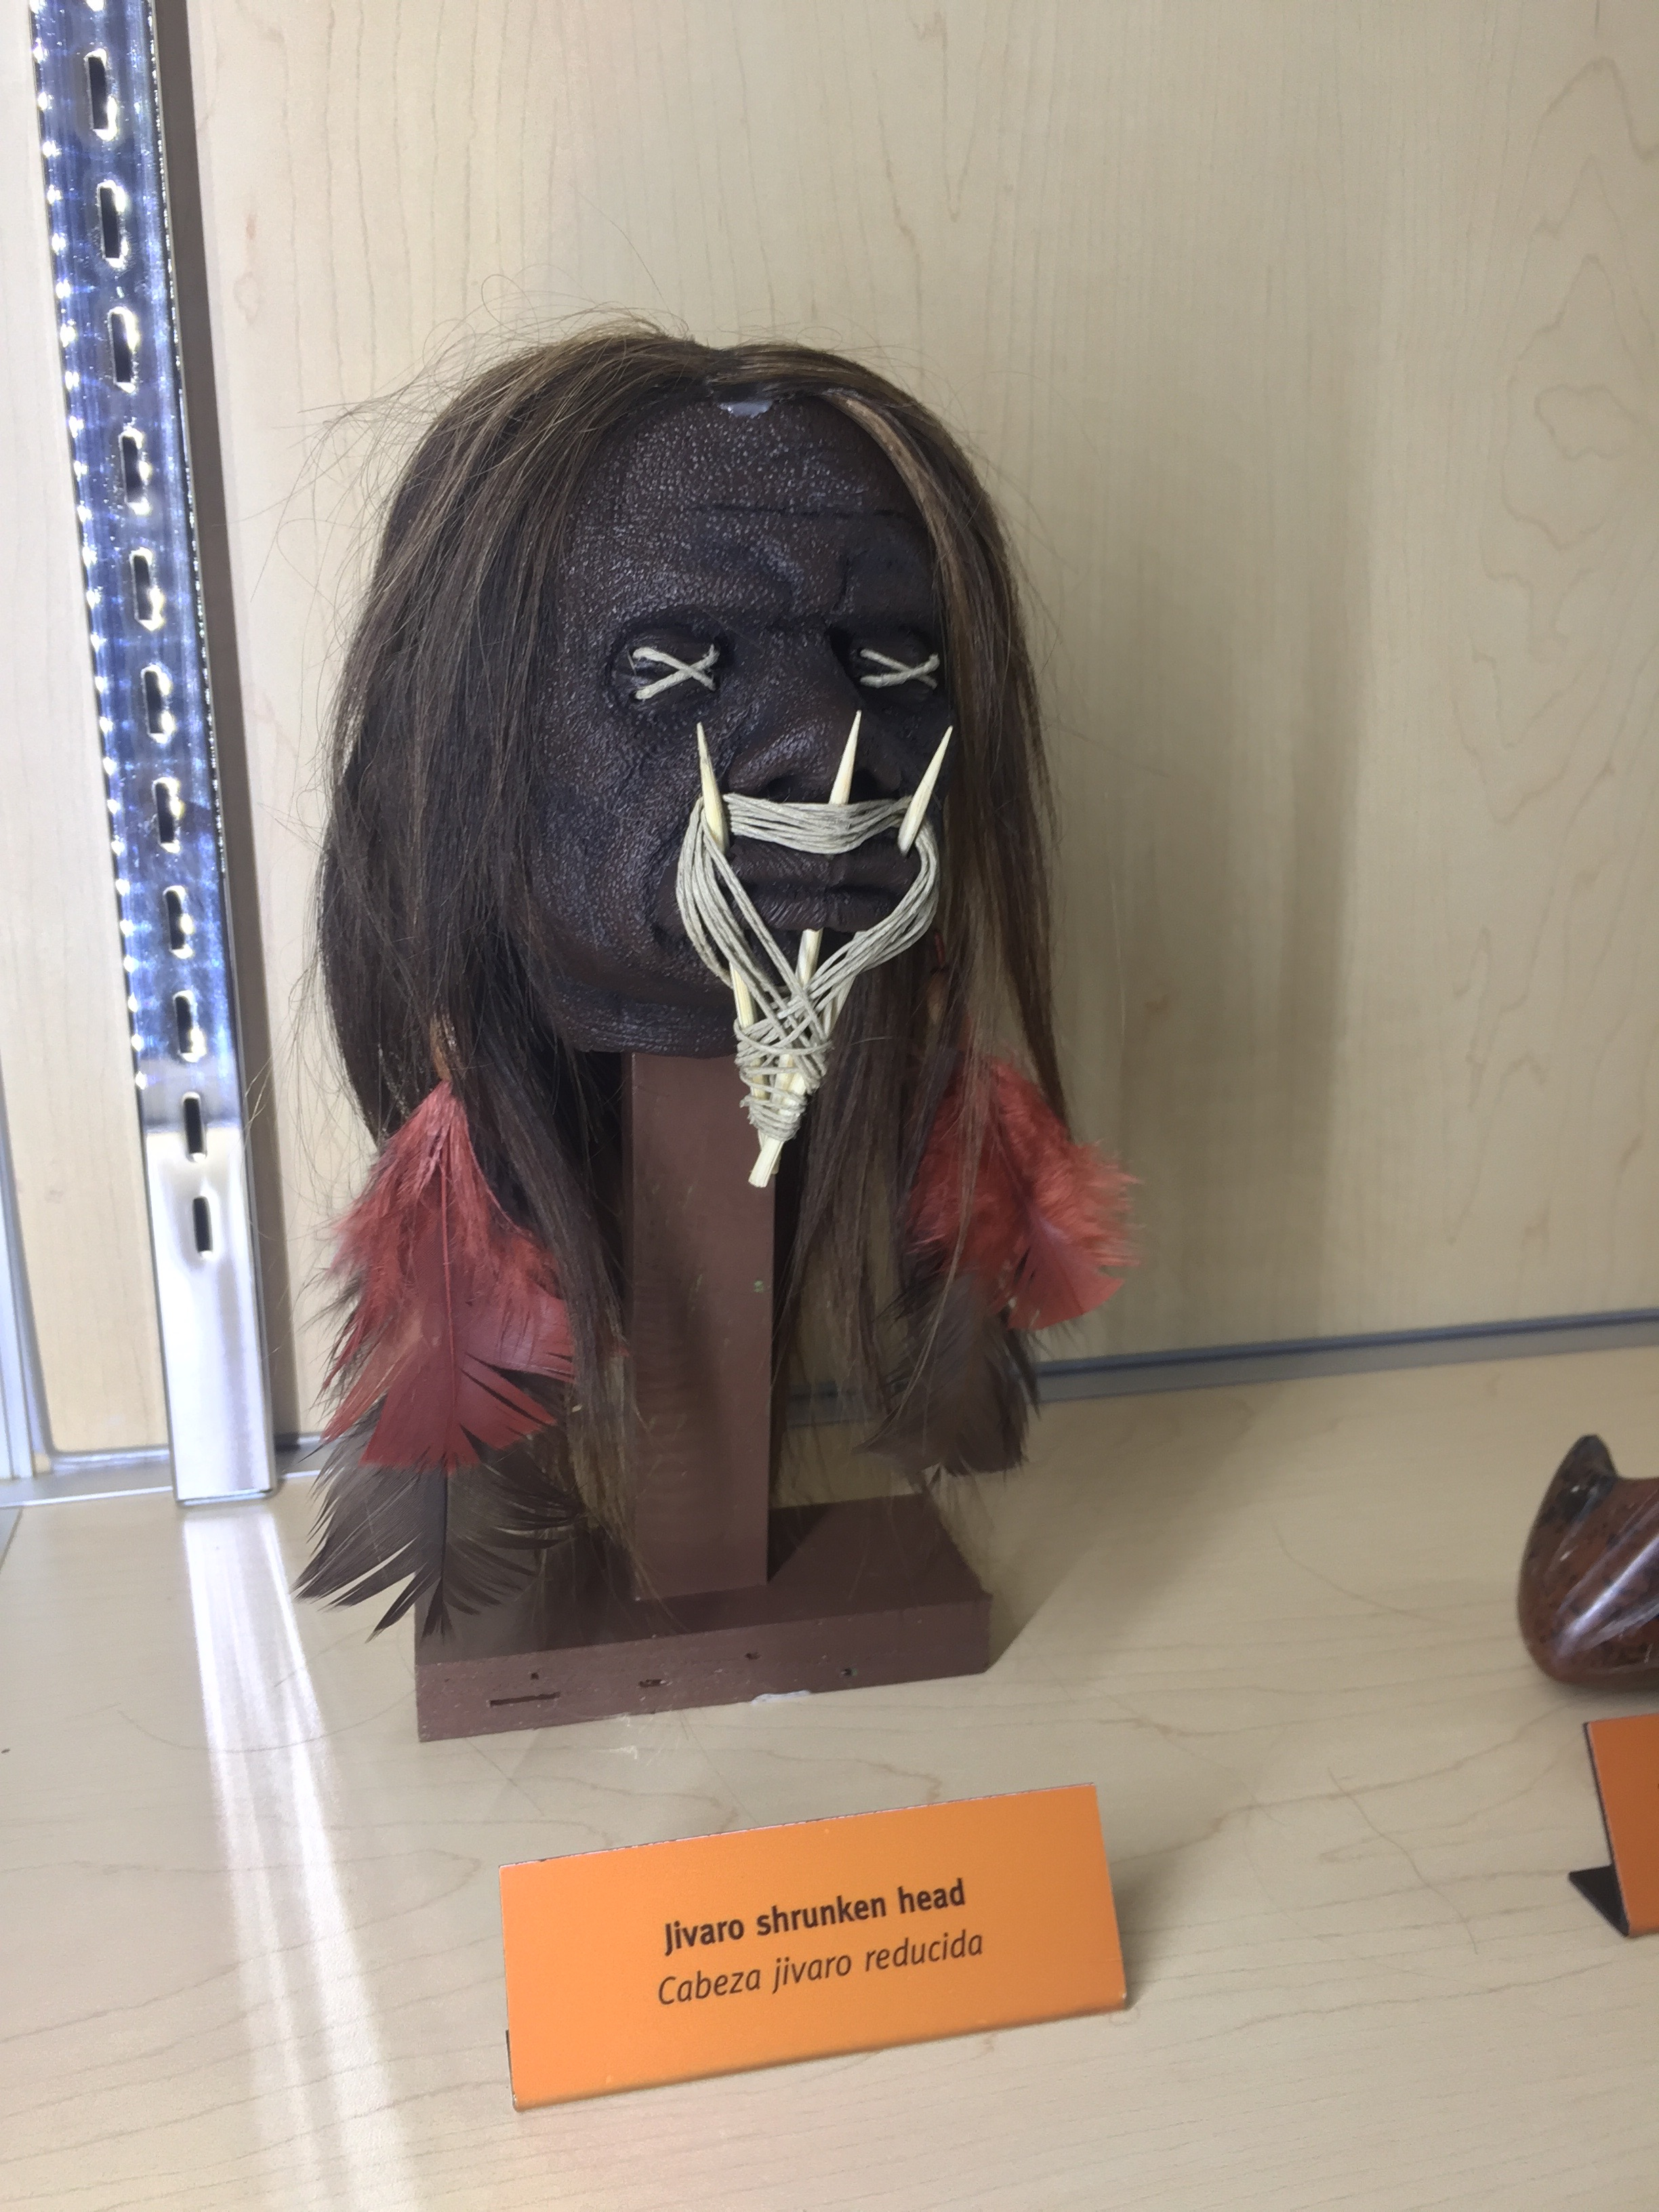 A South American shrunken head on display is a reminder of the cultural context into which cocoa use was born. The exhibit traced the sculptures back to Ecuadorean and Peruvian tribes called  Jivaros.